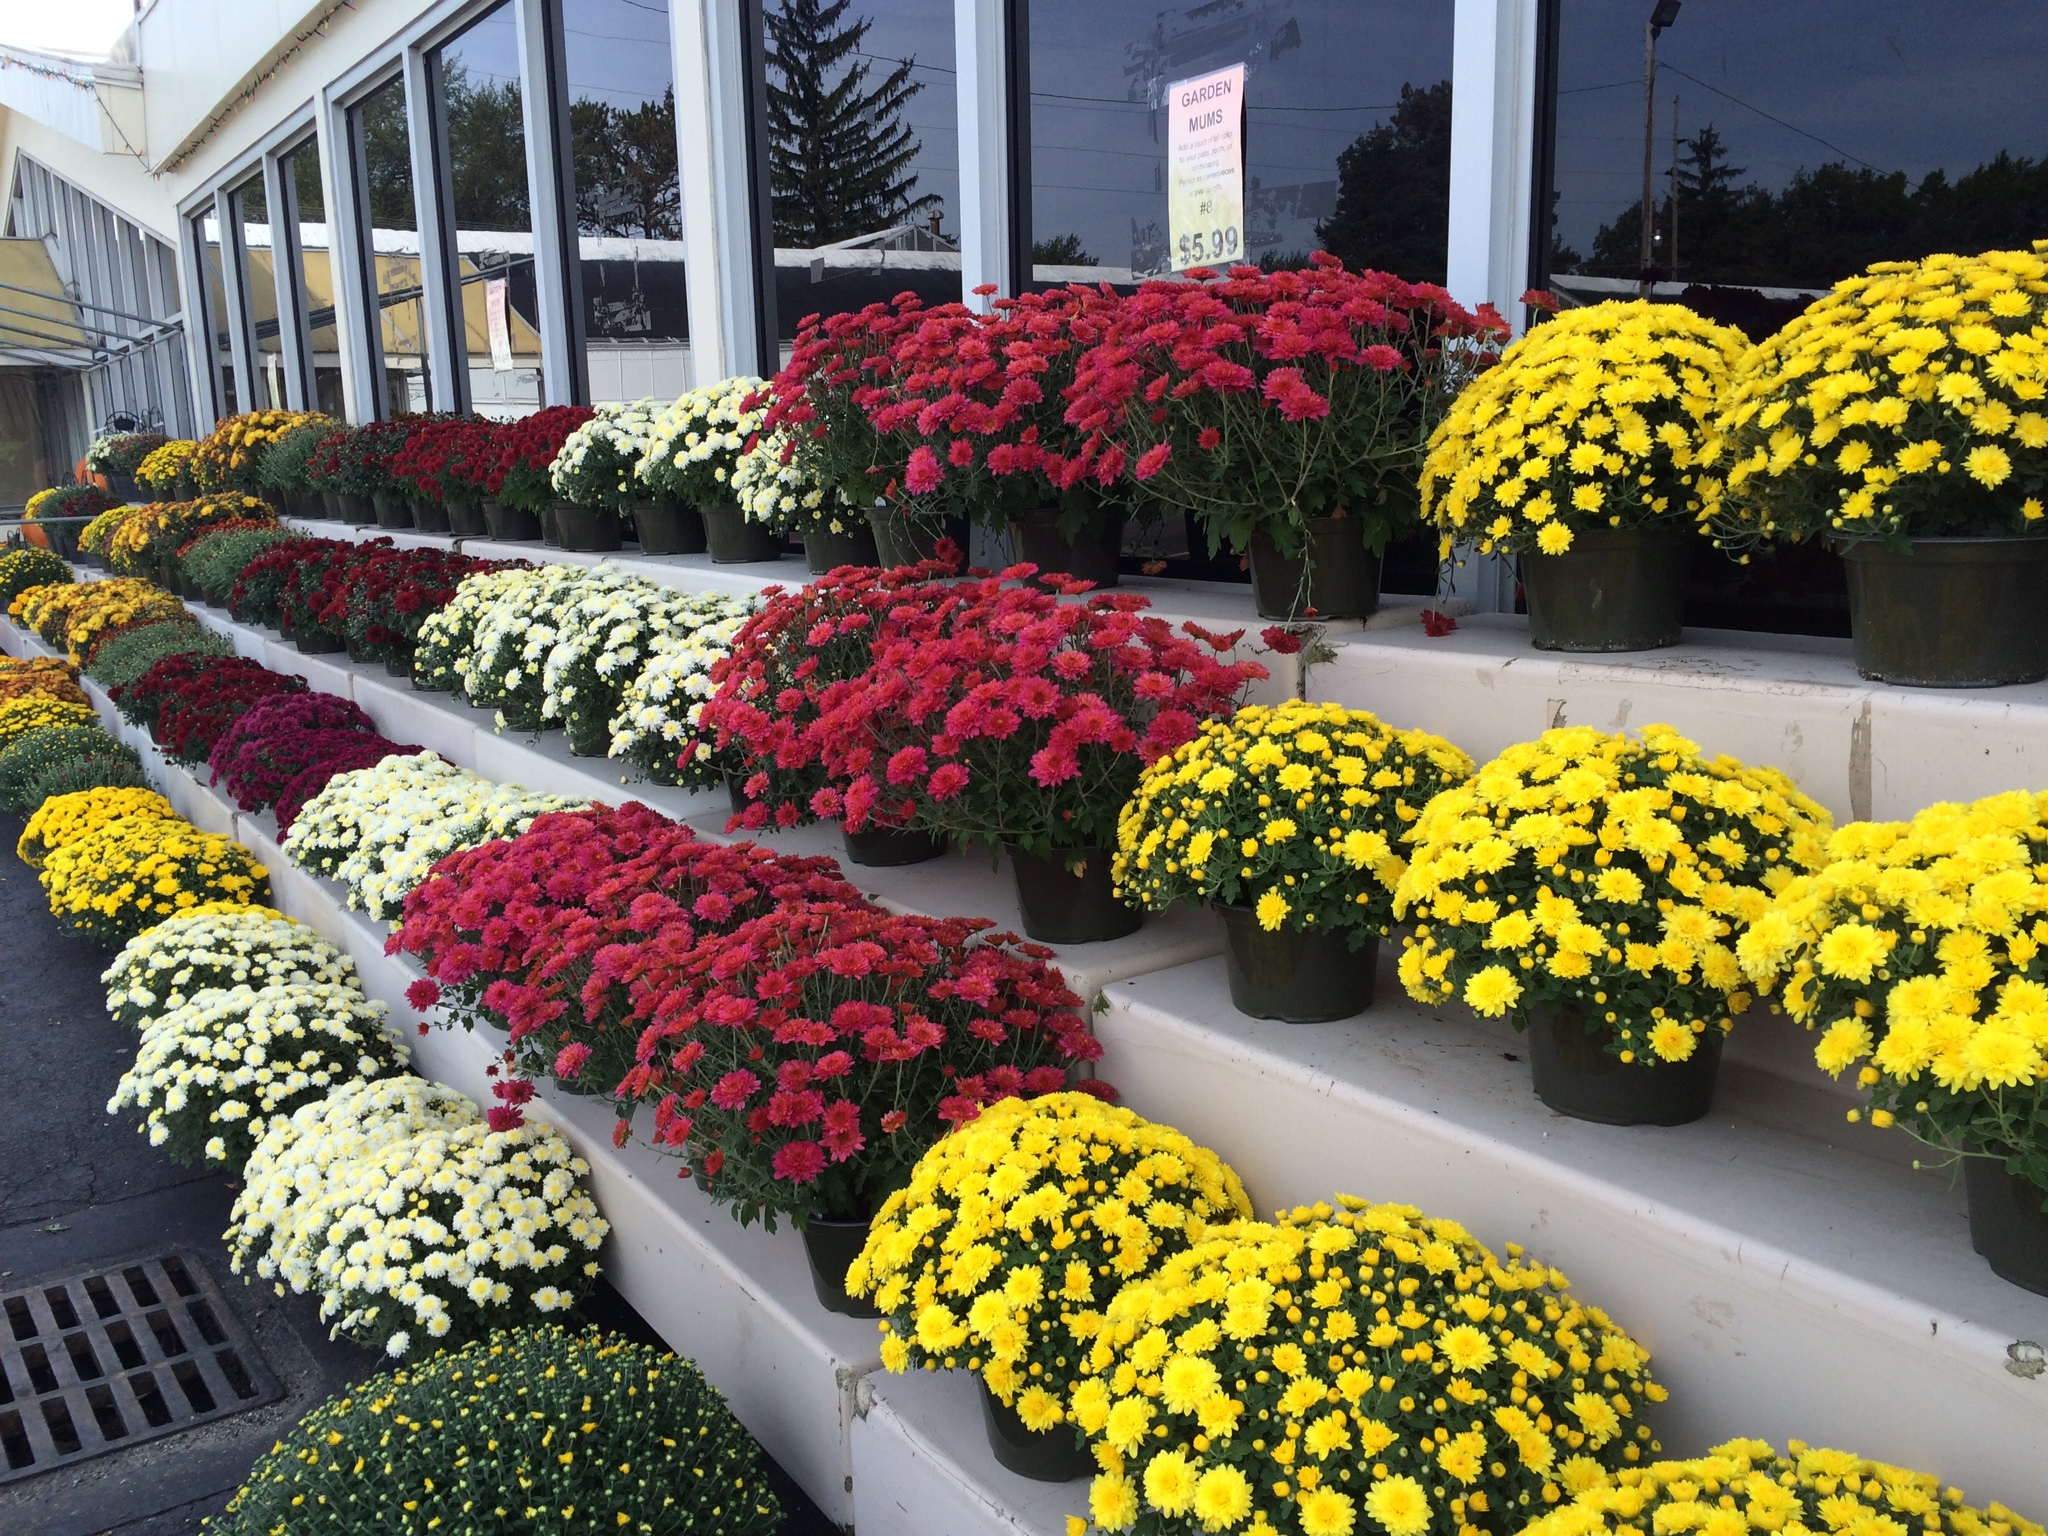 Even though Kraynak's starts its Christmas season in September, the store's greenhouses and off-site 700 acres grows seasonal plants, flowers and trees. Mums are ubiquitous in the Northeast and Midwest during the autumn months.